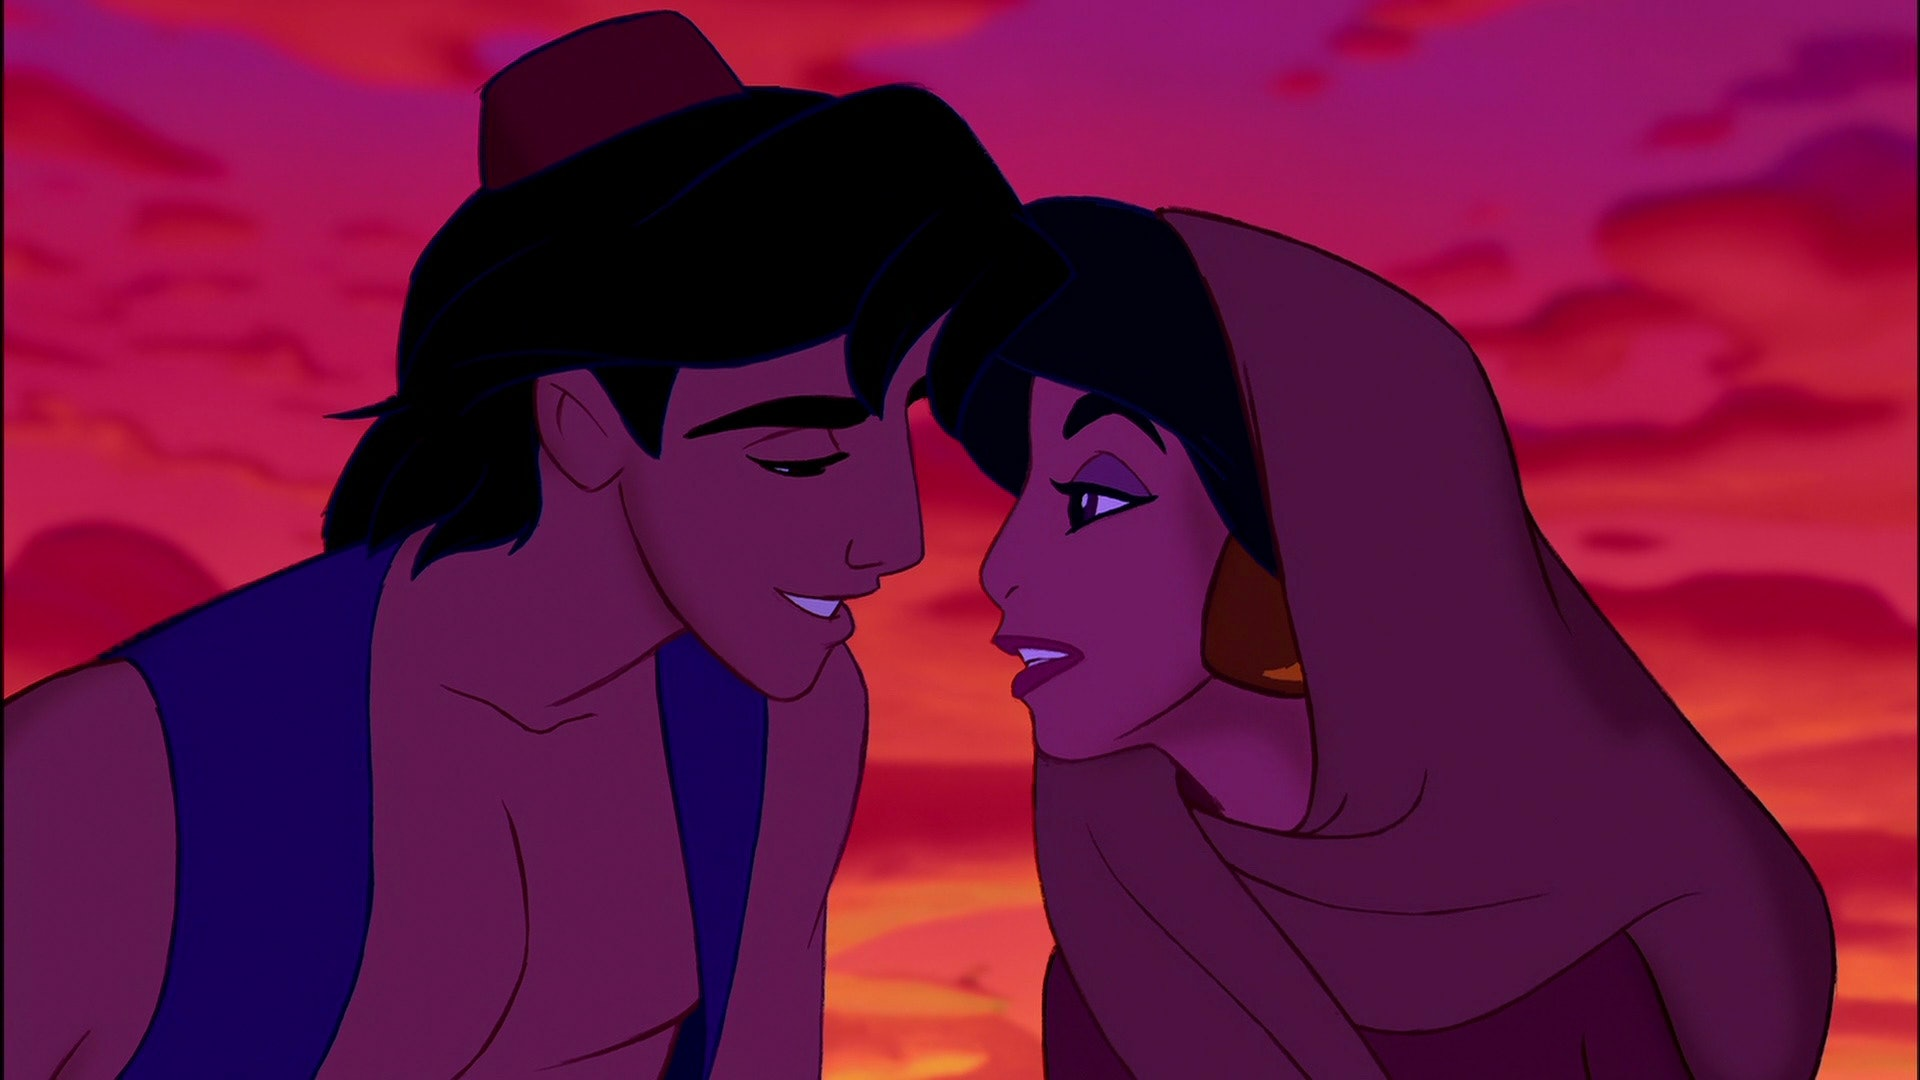 Why hand drawn disney movies will always hit you in the feels